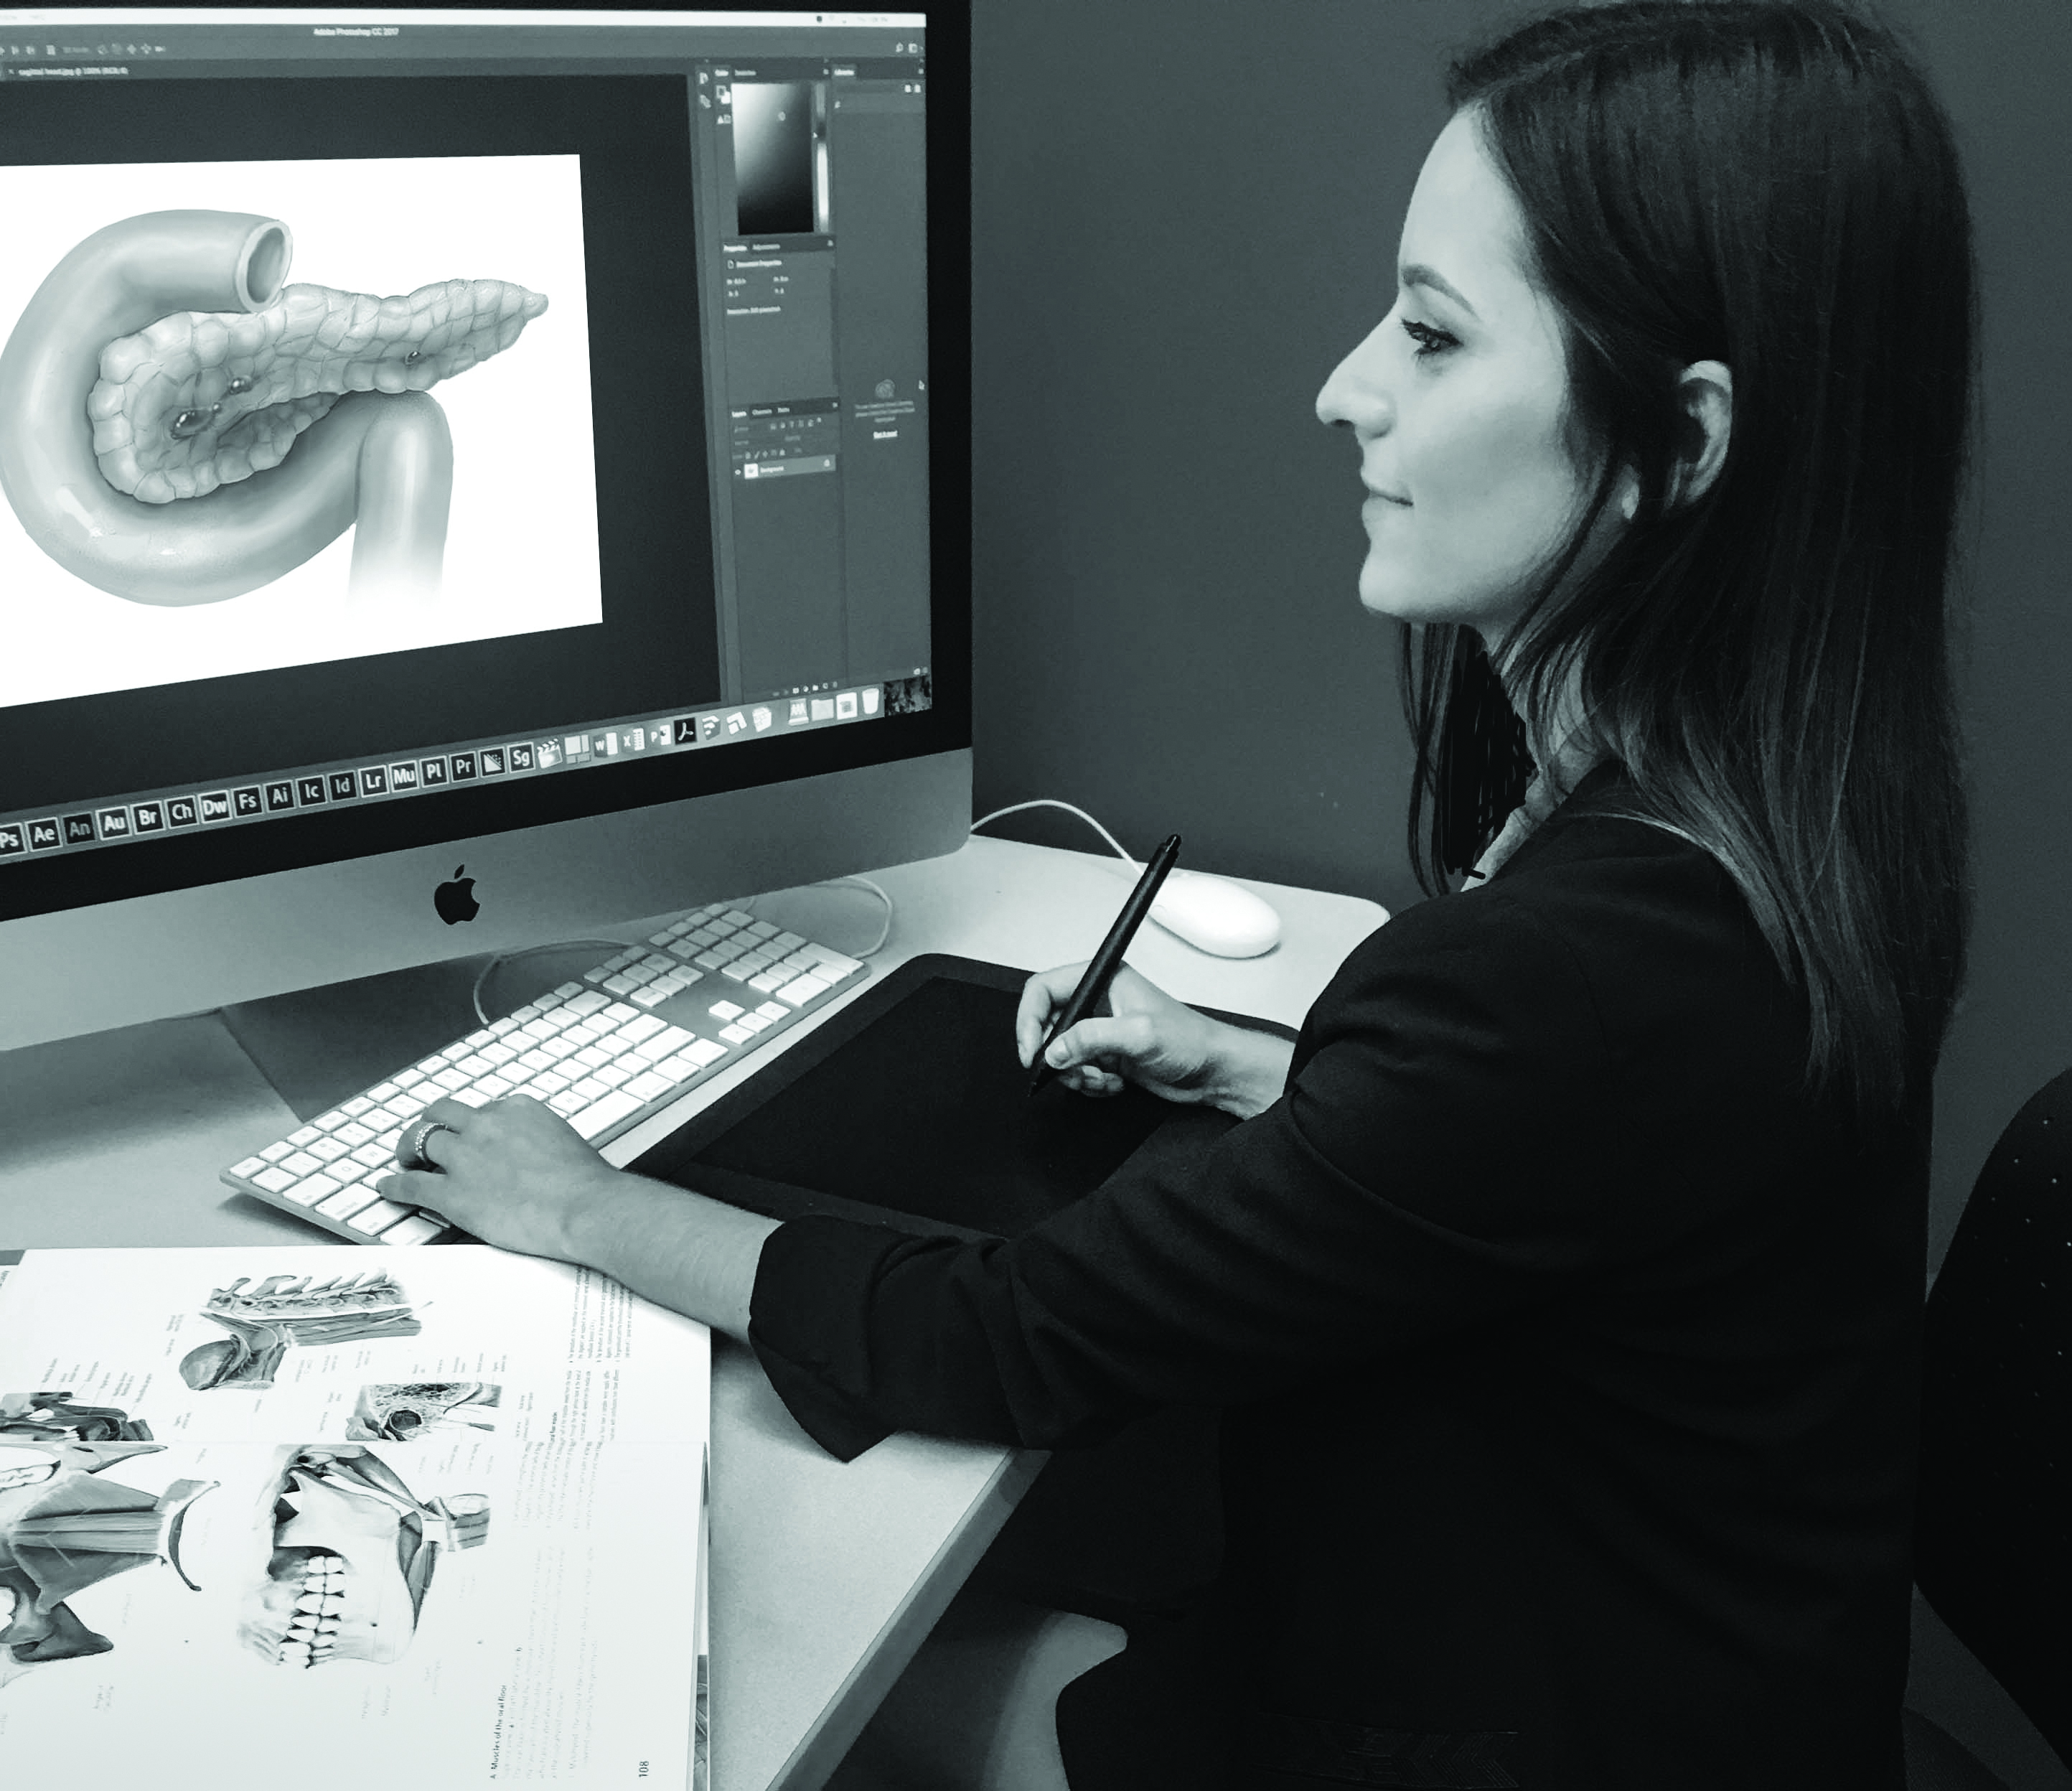 Women sitting at her computer creating an digital illustration of the human body